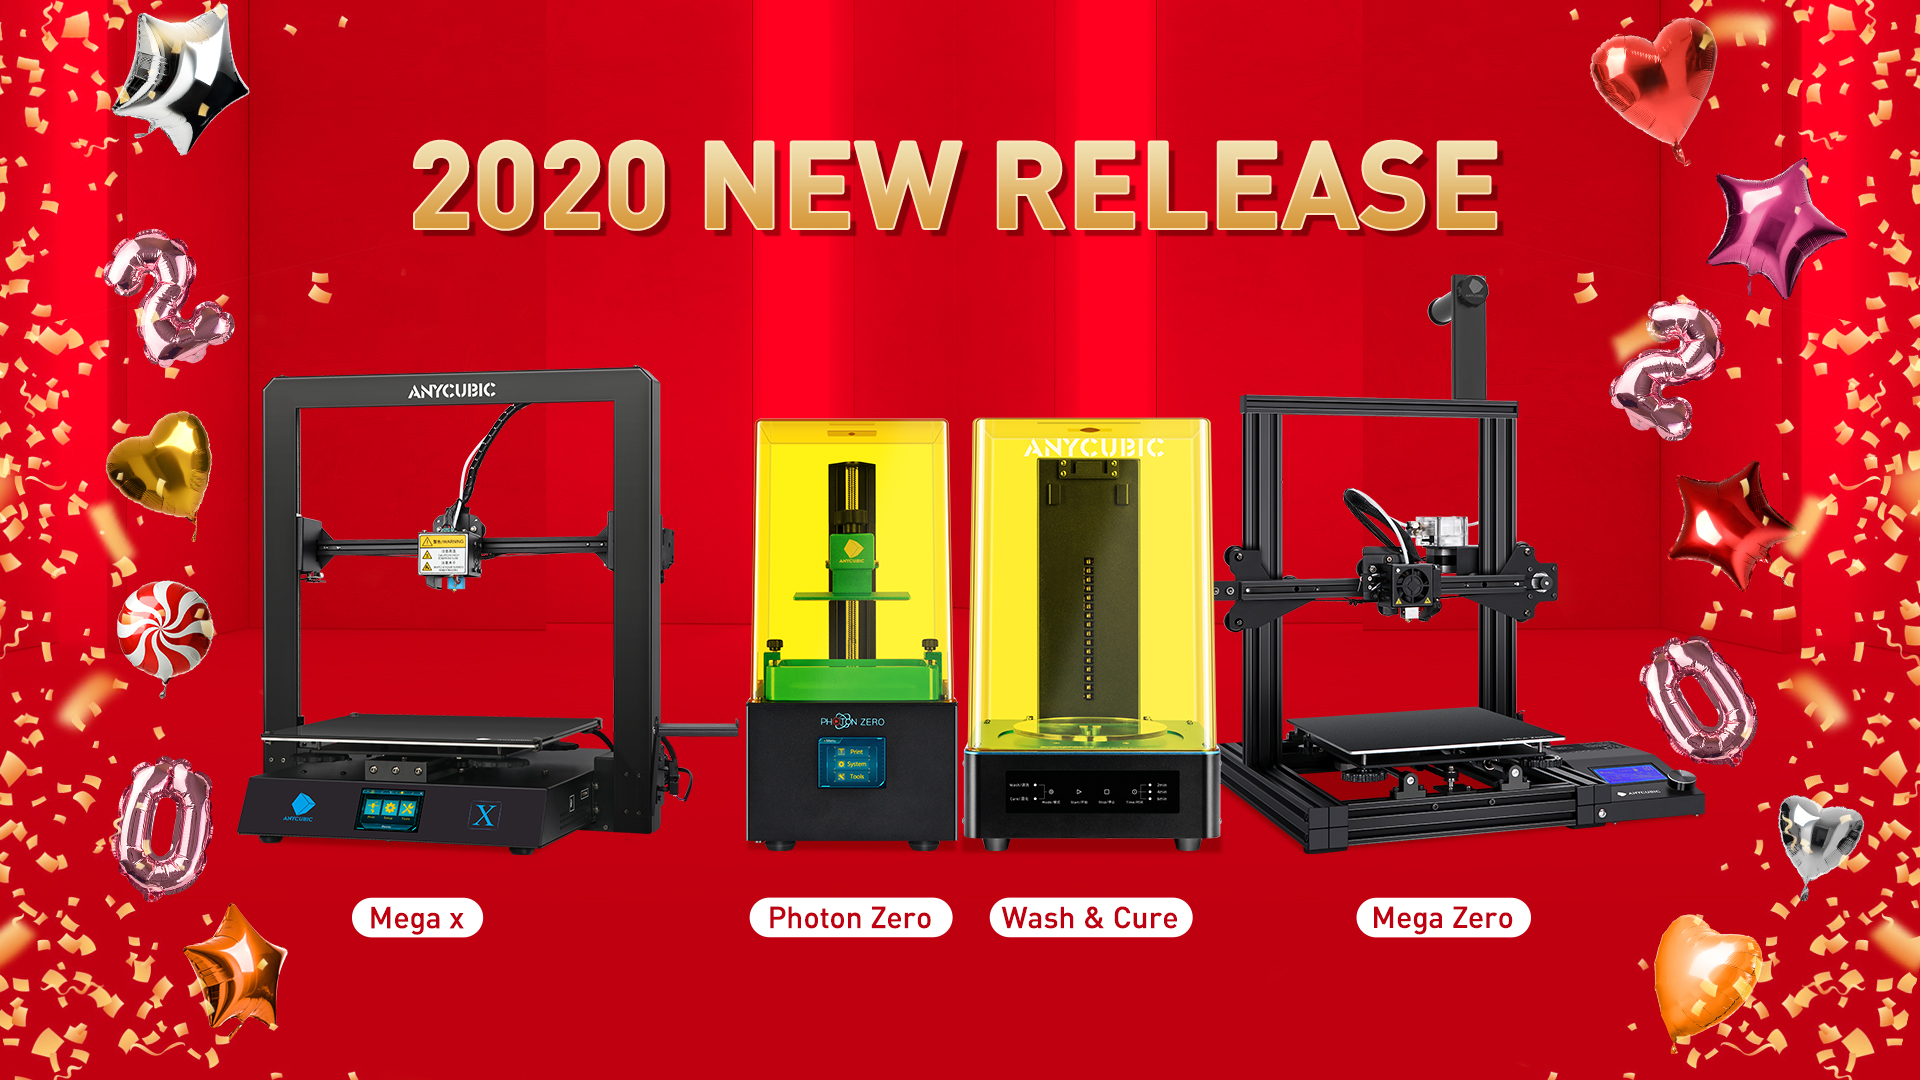 Anycubic Debuts New Printers and Wash & Cure Machine | All3DP